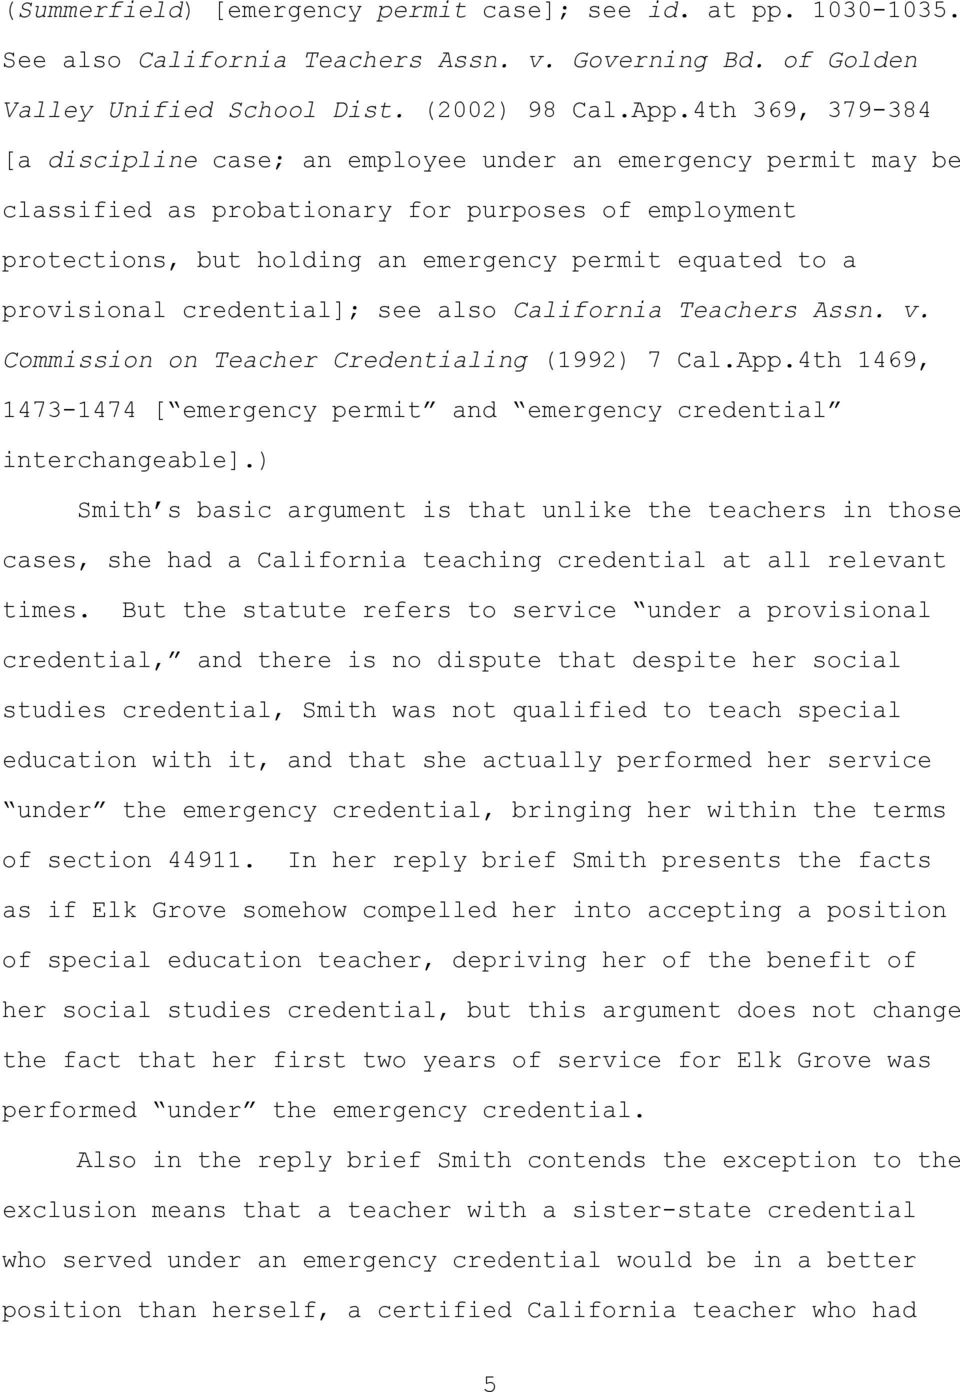 provisional credential]; see also California Teachers Assn. v. Commission on Teacher Credentialing (1992) 7 Cal.App.4th 1469, 1473-1474 [ emergency permit and emergency credential interchangeable].